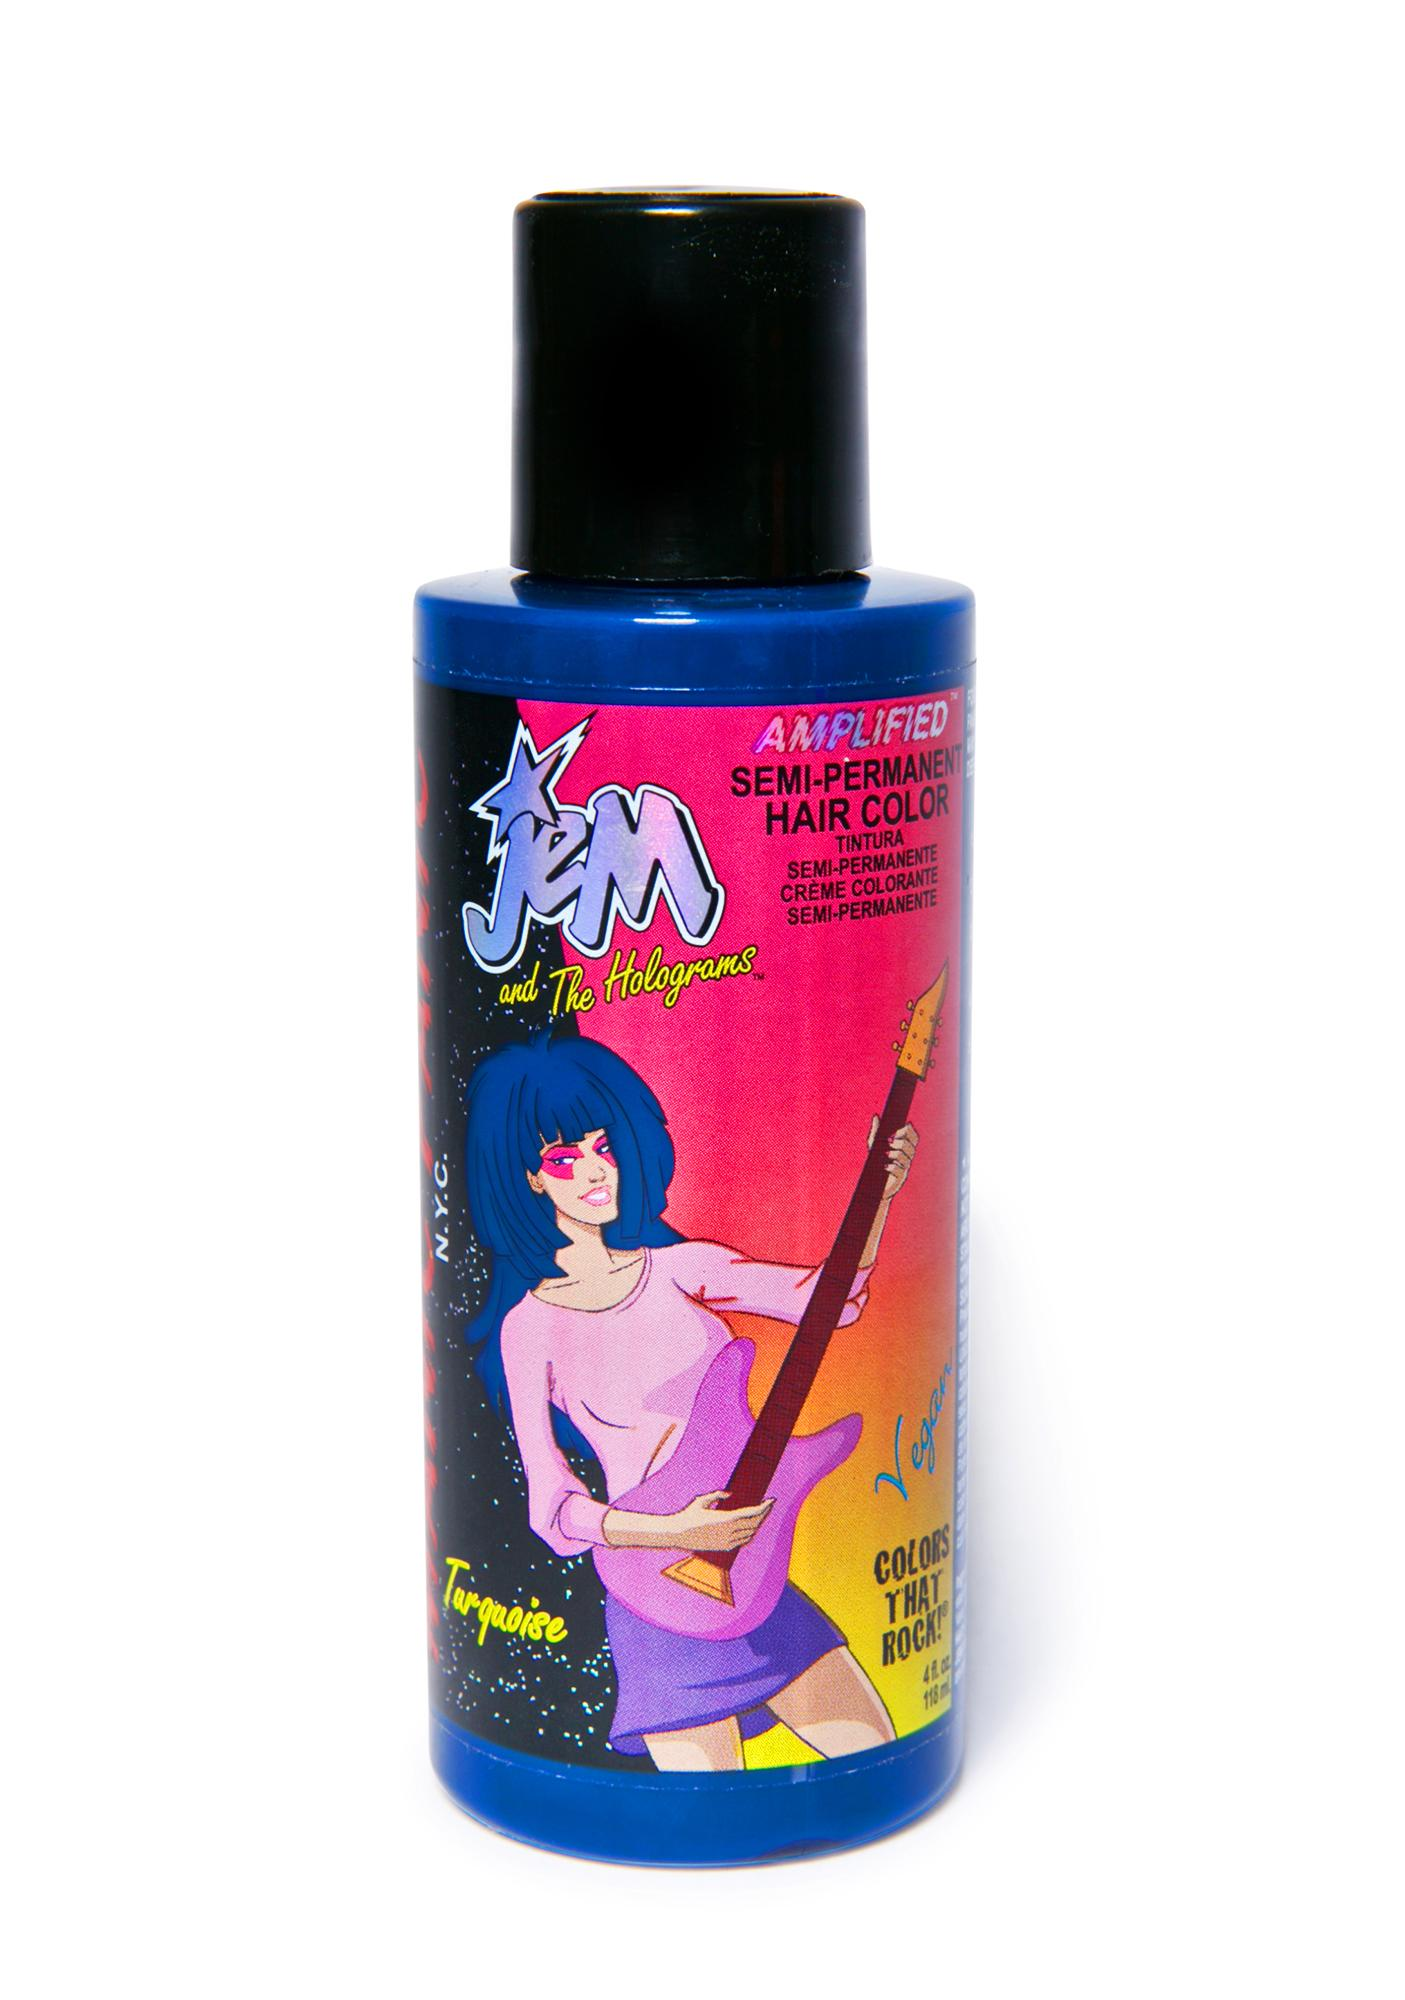 Manic Panic JEM Amplified Turquoise Hair Dye